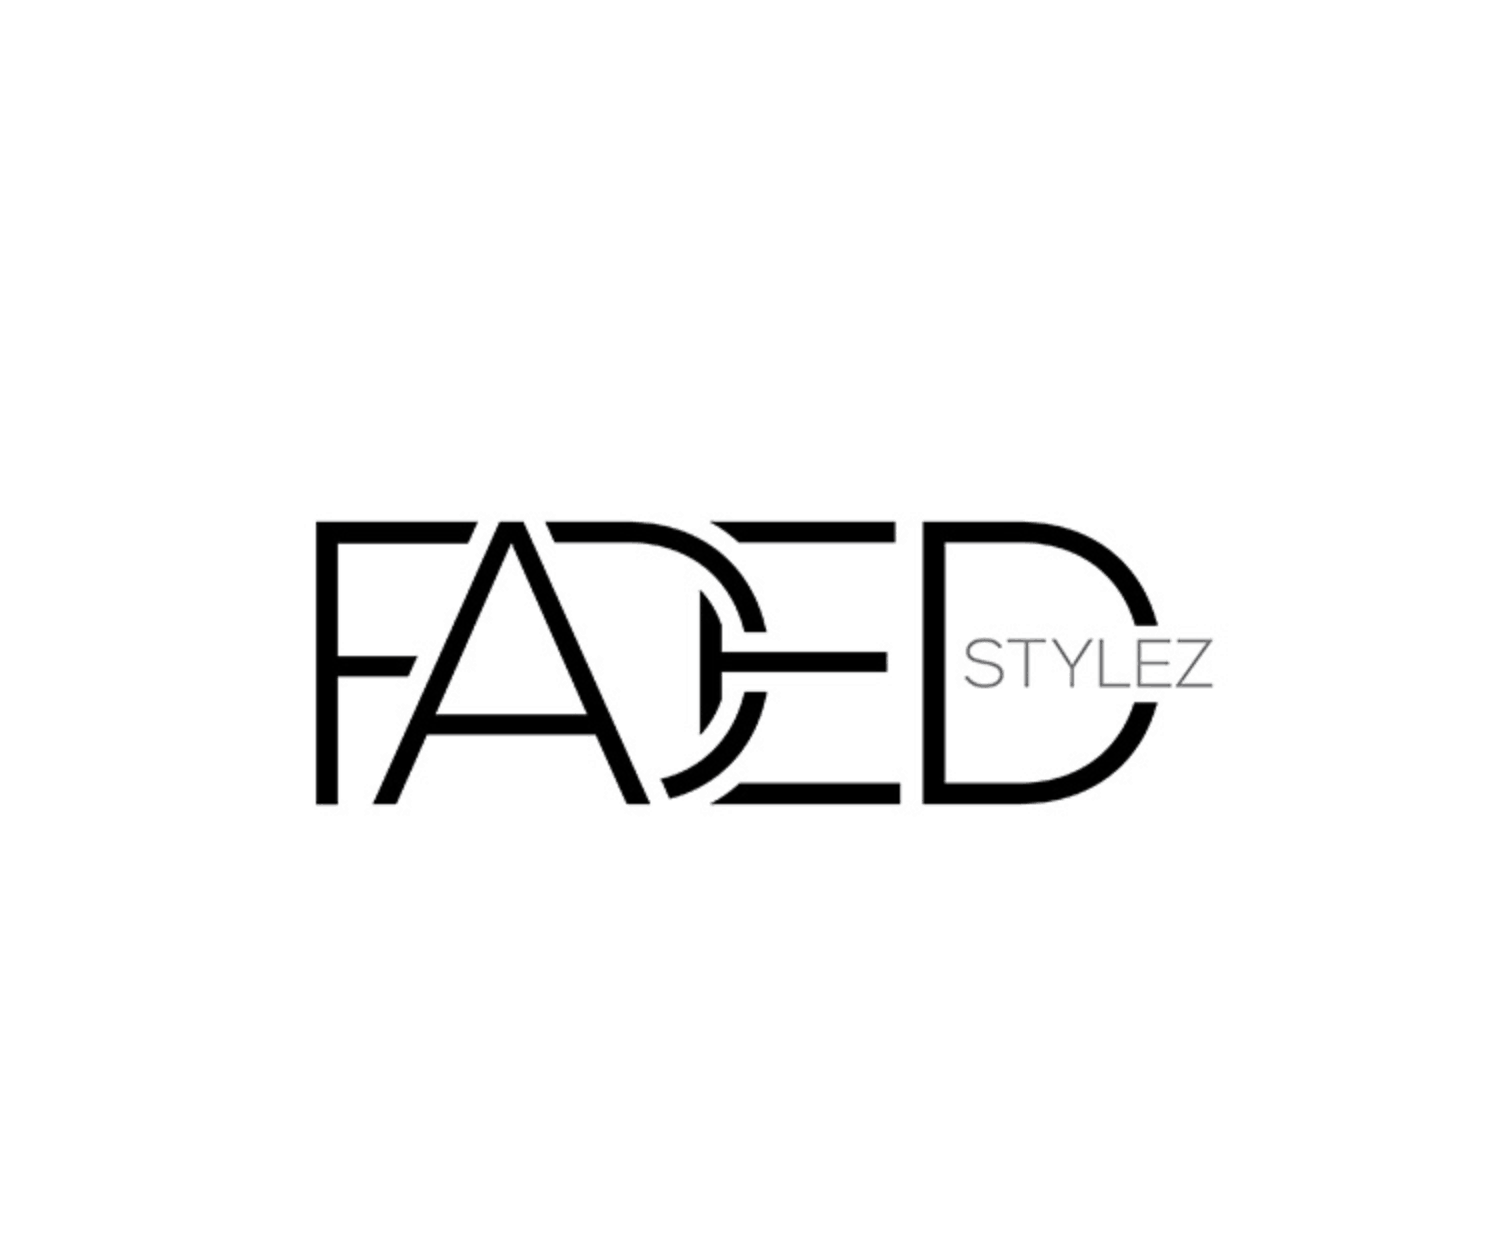 Tailored Logo-Faded Stylez의 로고